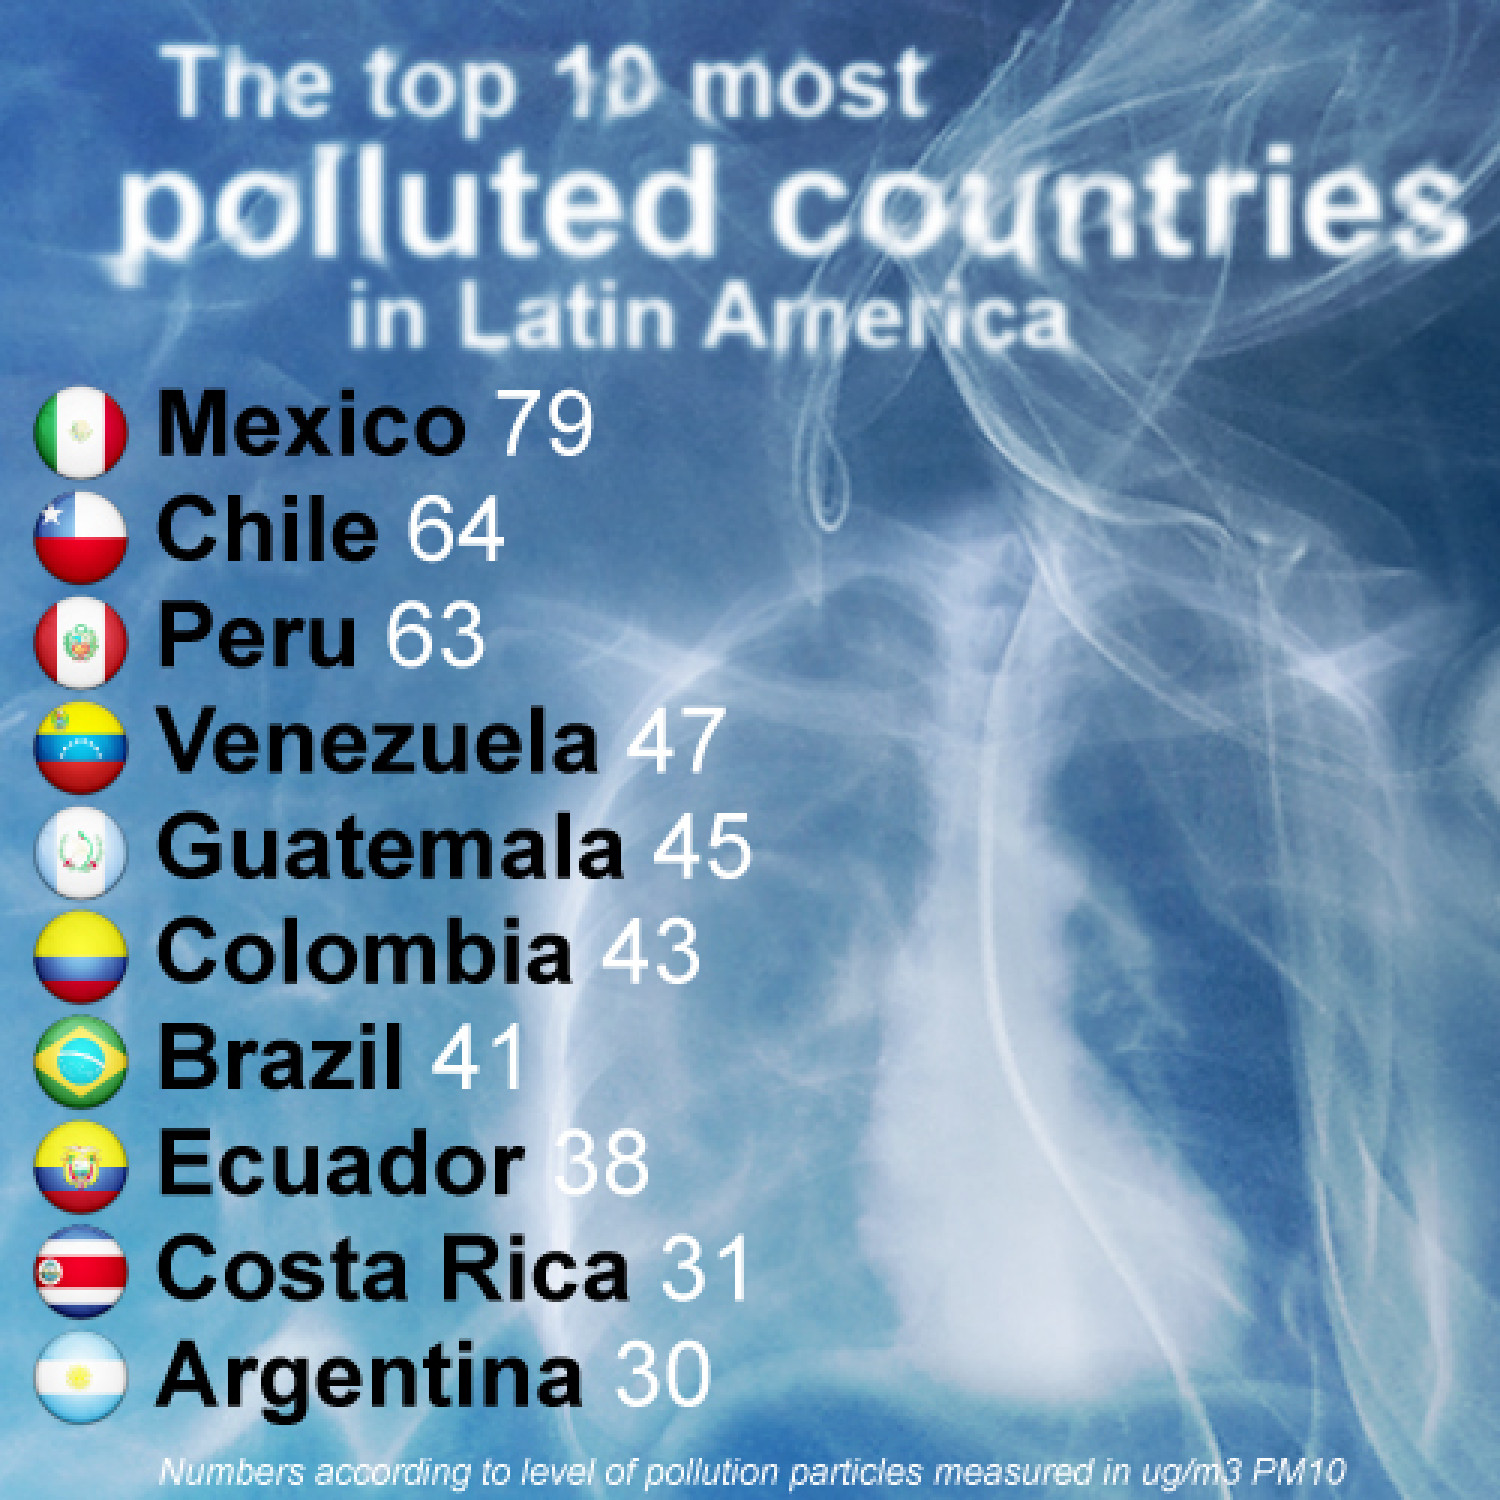 The Top 10 Most Polluted Countries in Latin America Infographic